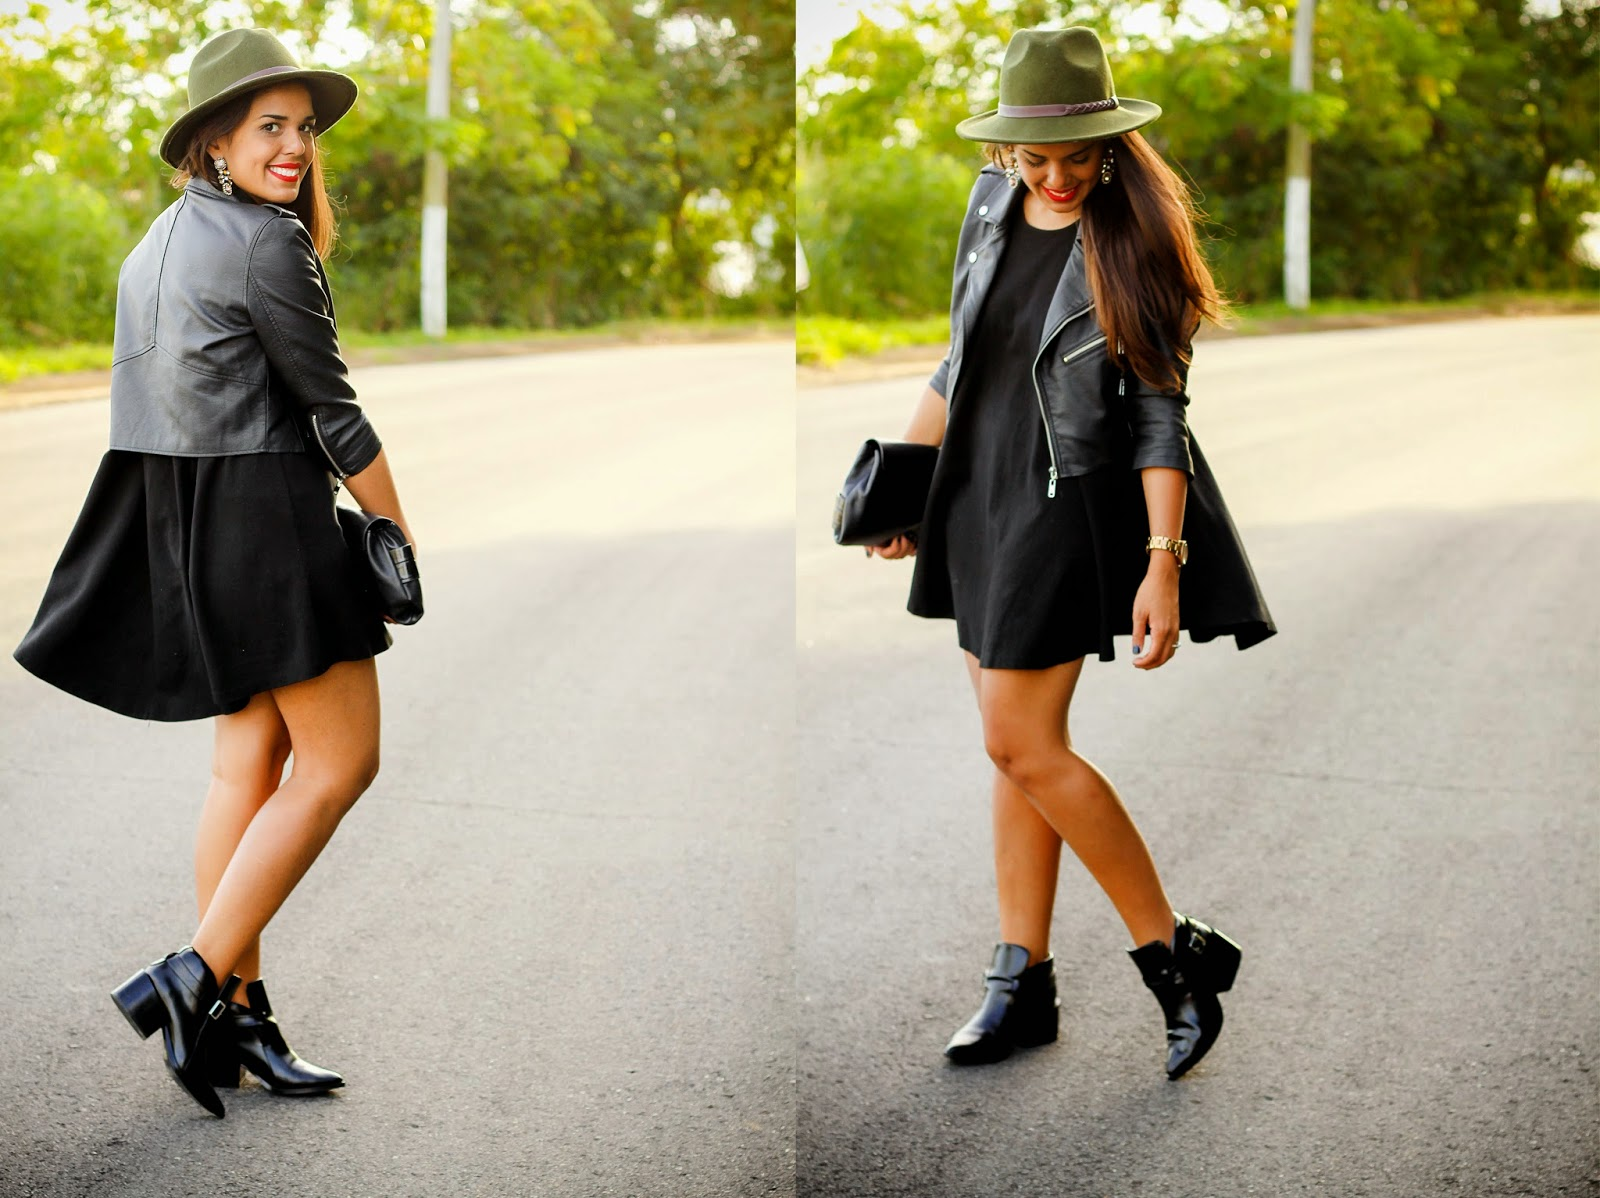 4 Different Ways to Wear a Little Black DressBroke and Chic